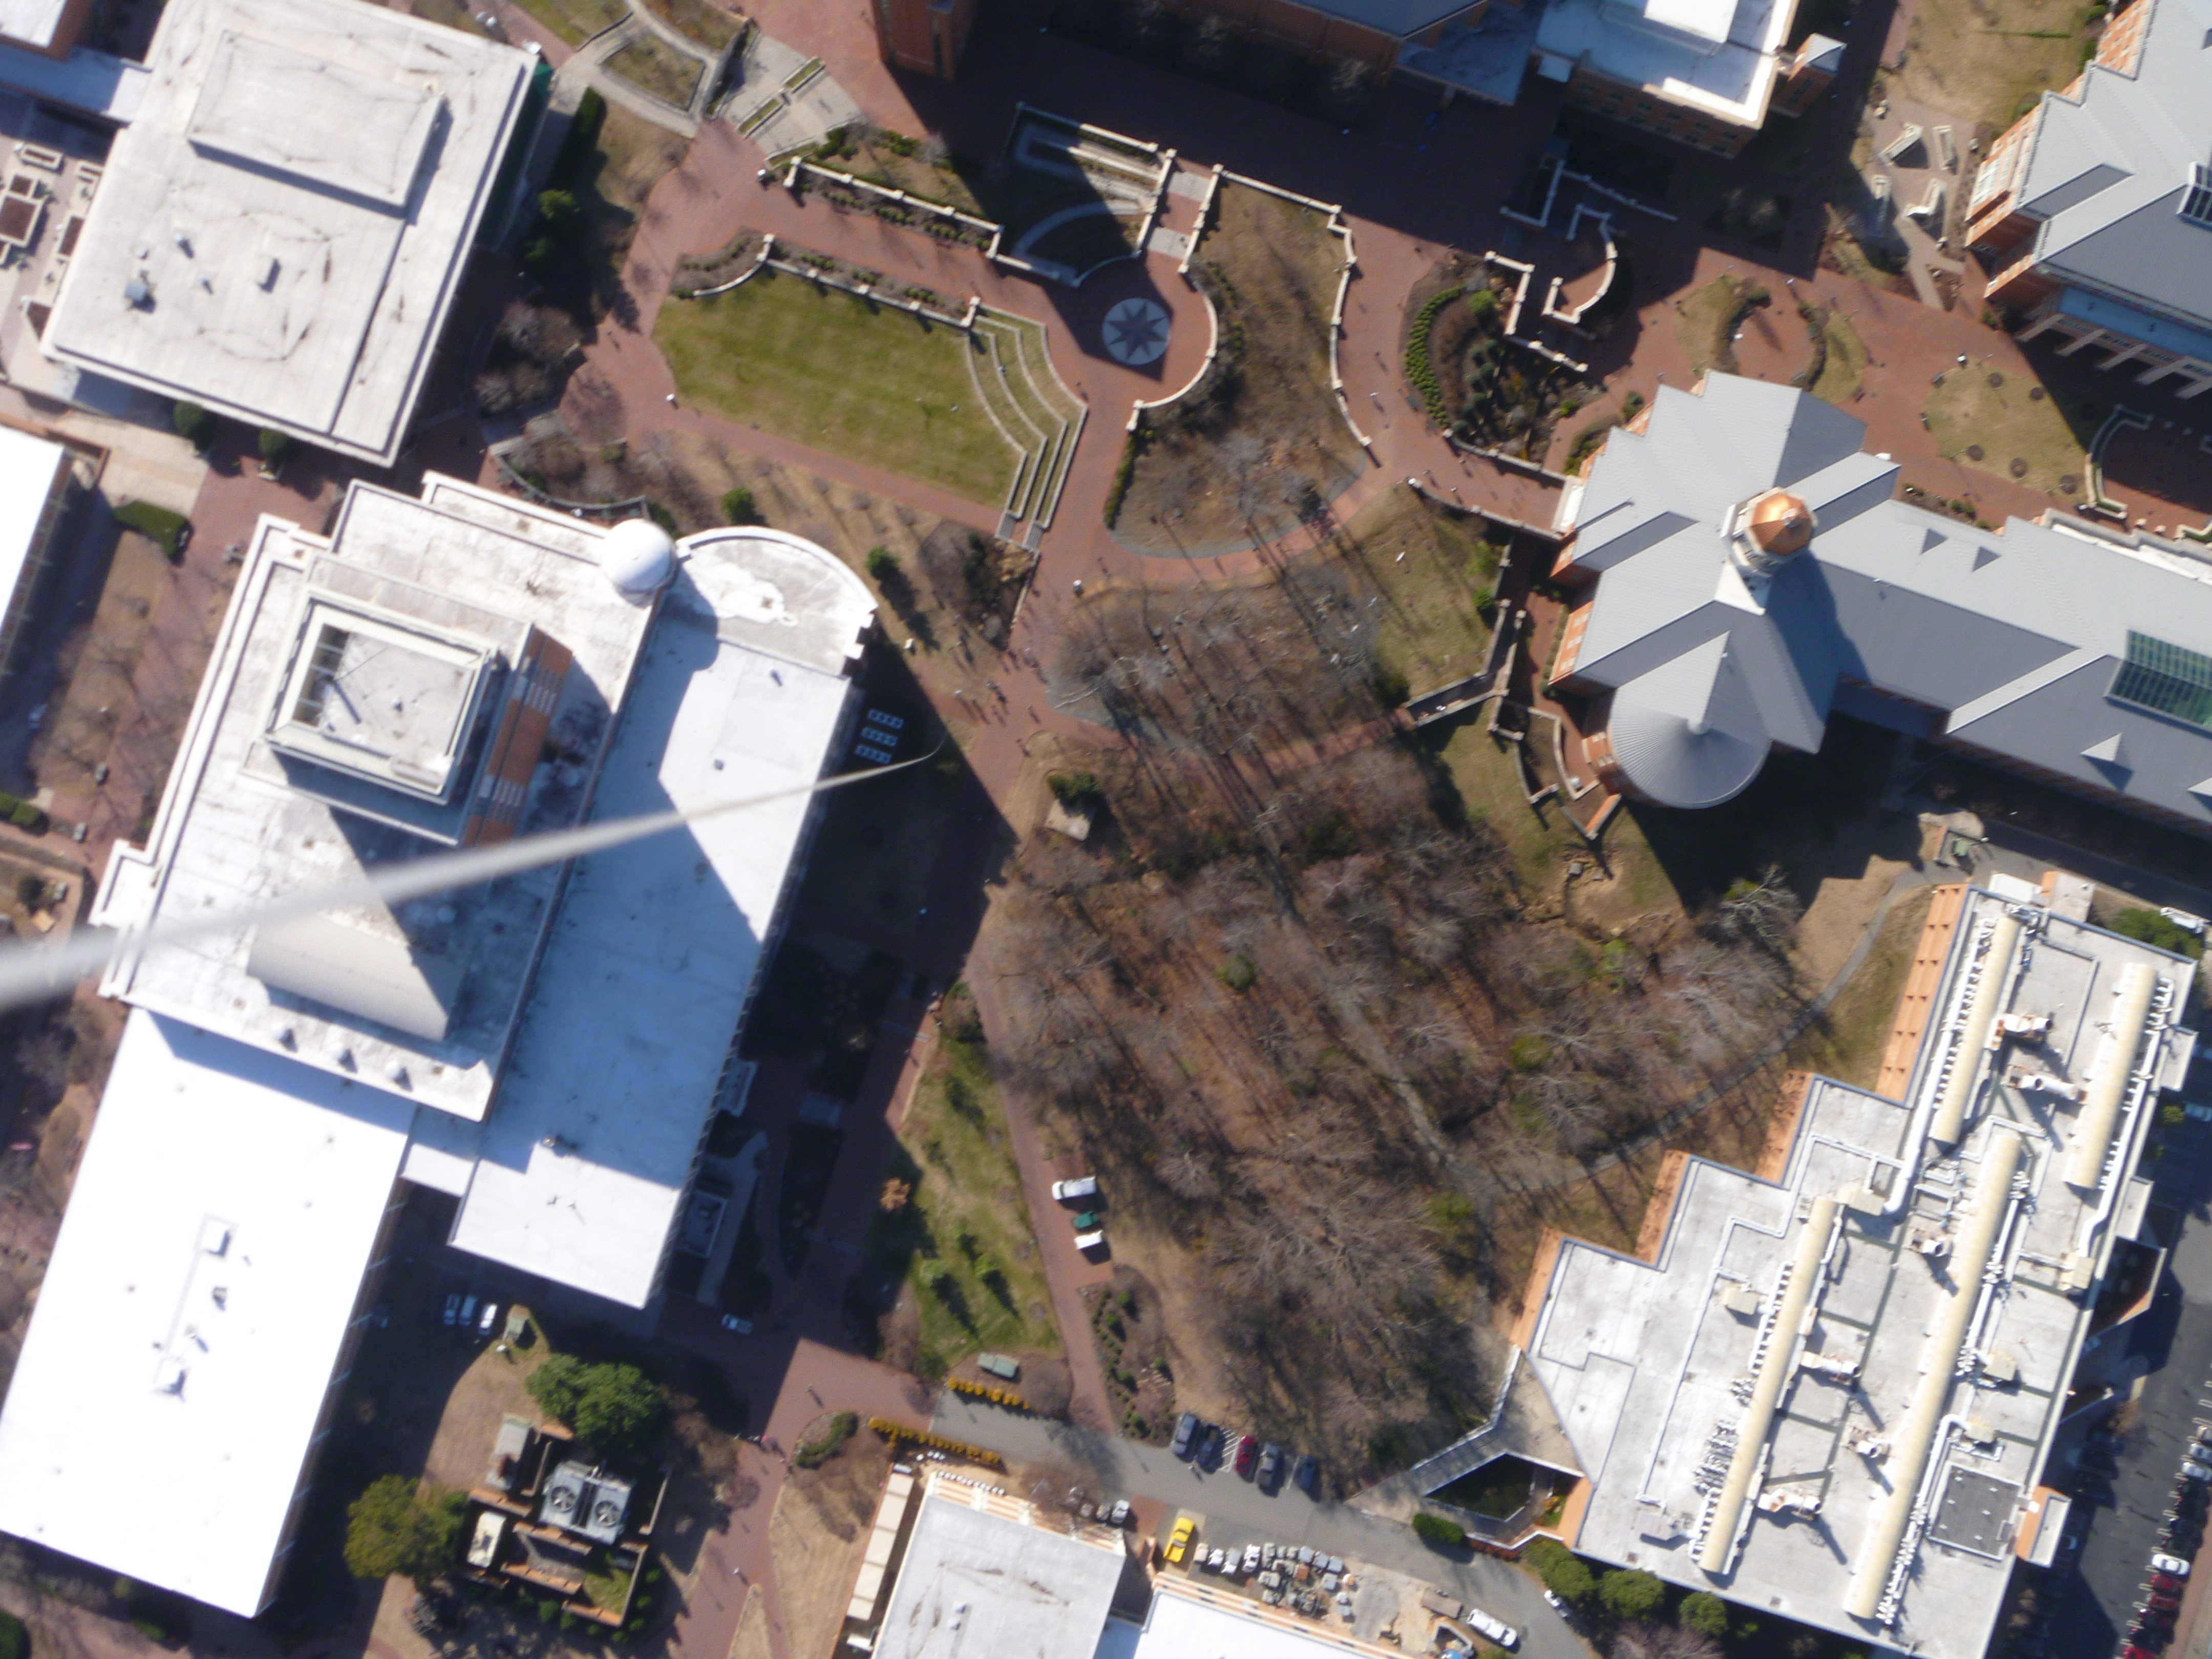 Unc Charlotte Campus pond and front